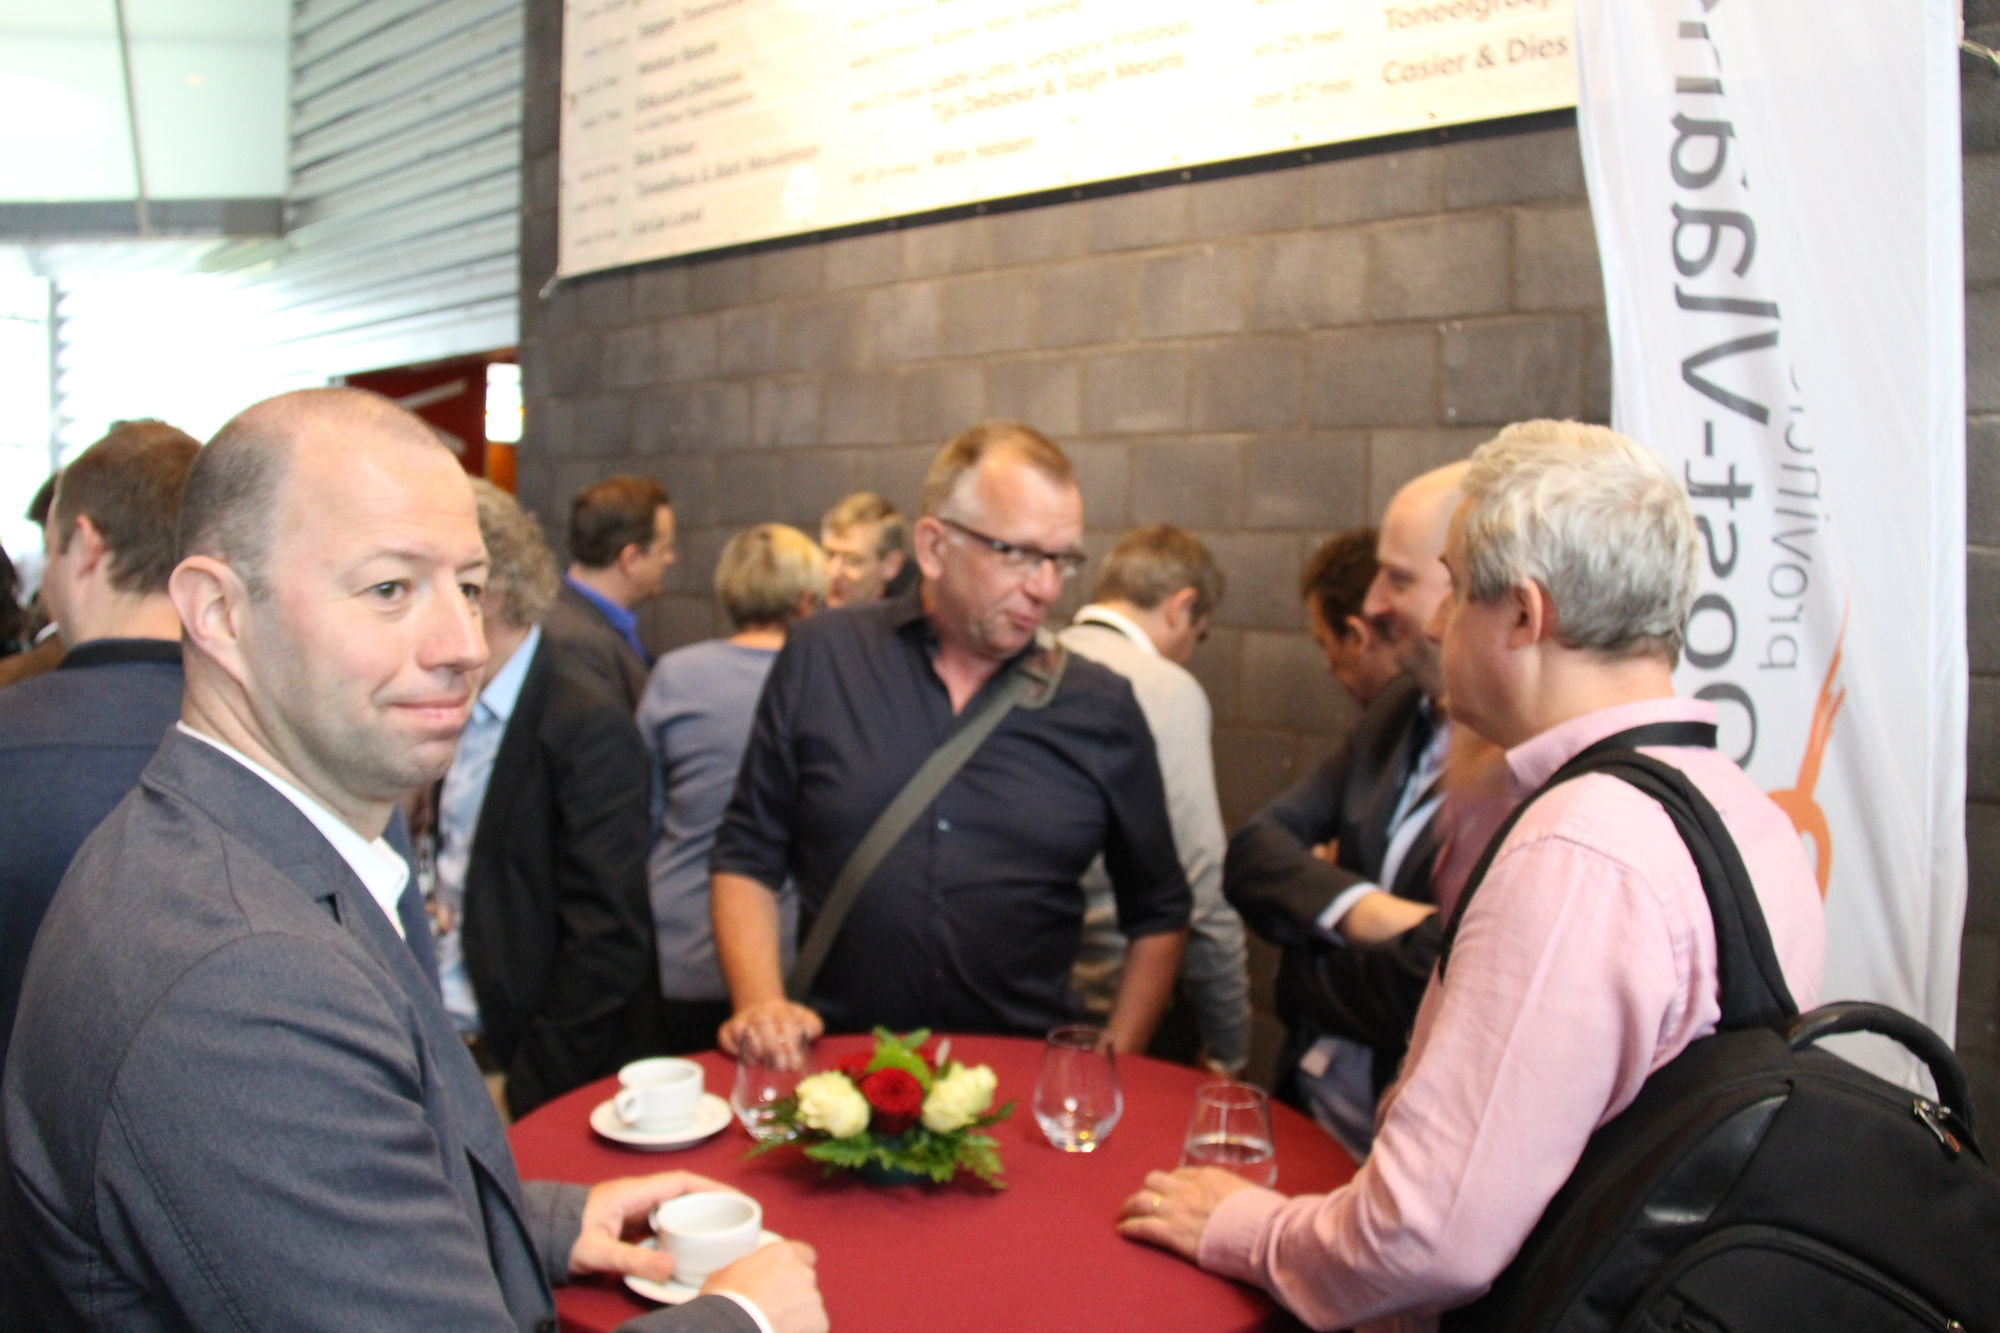 20180424_warmtecongres_VM_00166.JPG